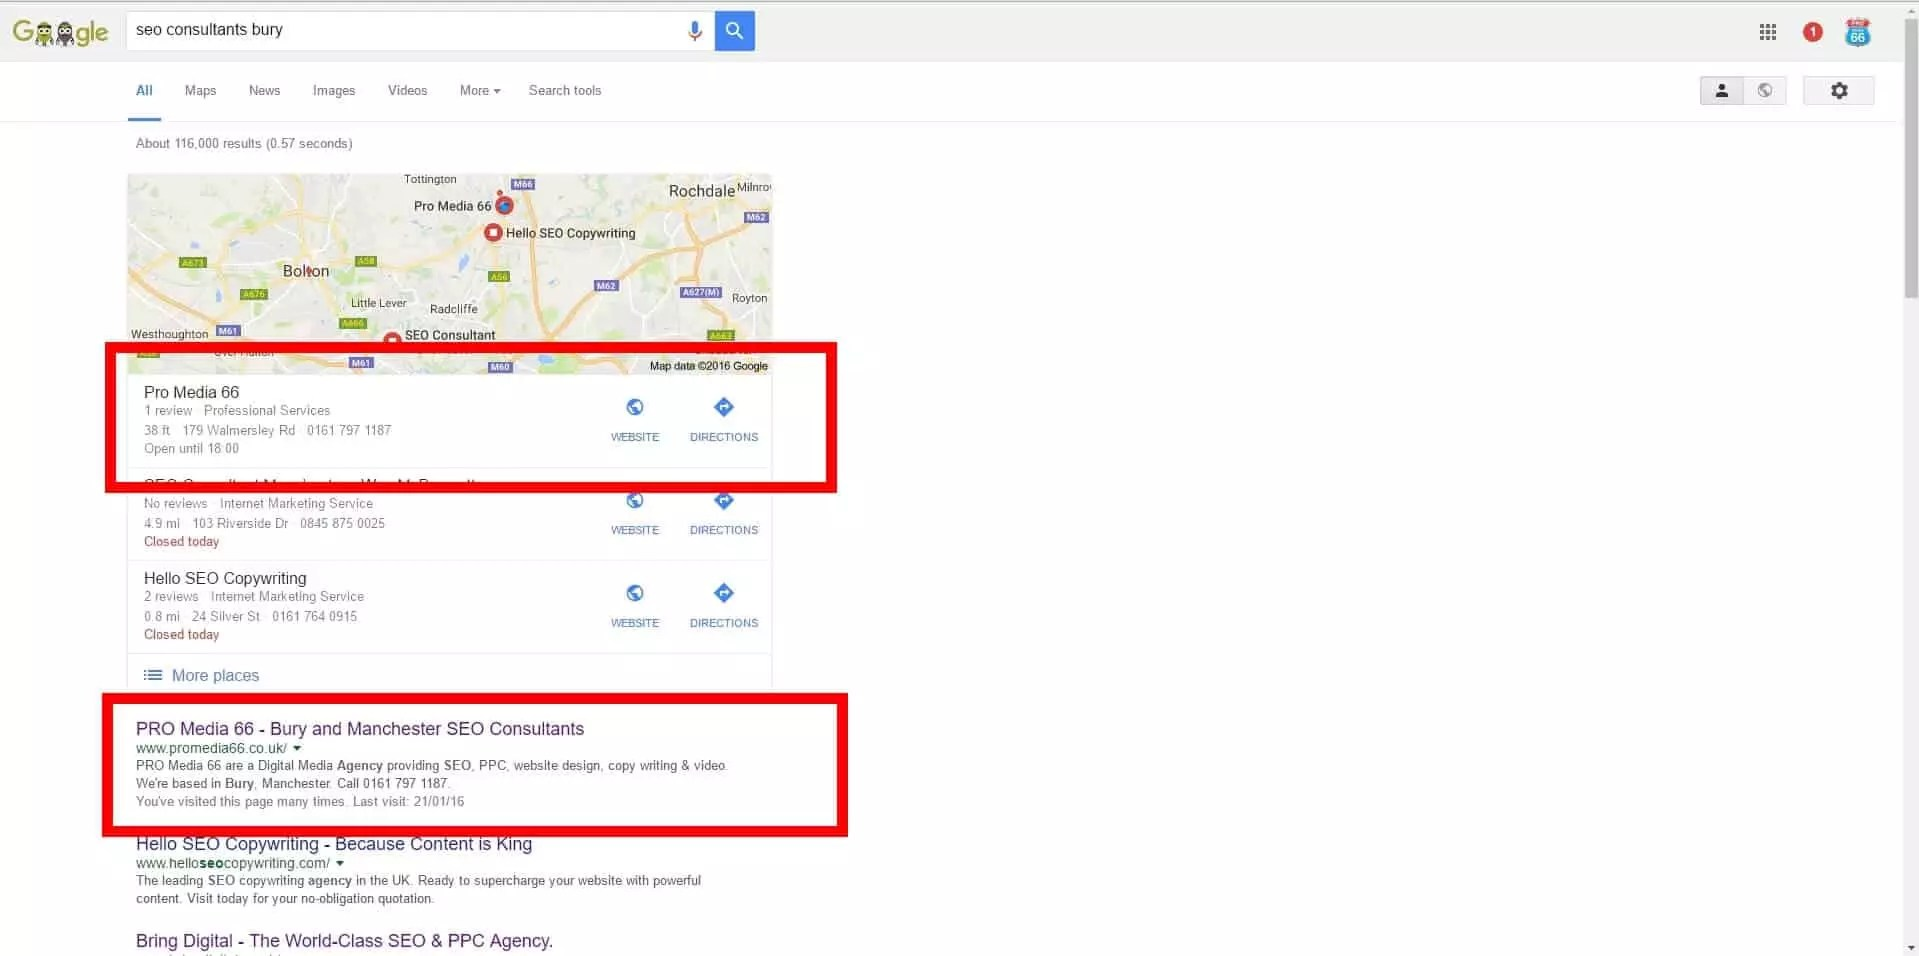 No.1 On Google Local And No. 1 In The Natural Search Results.